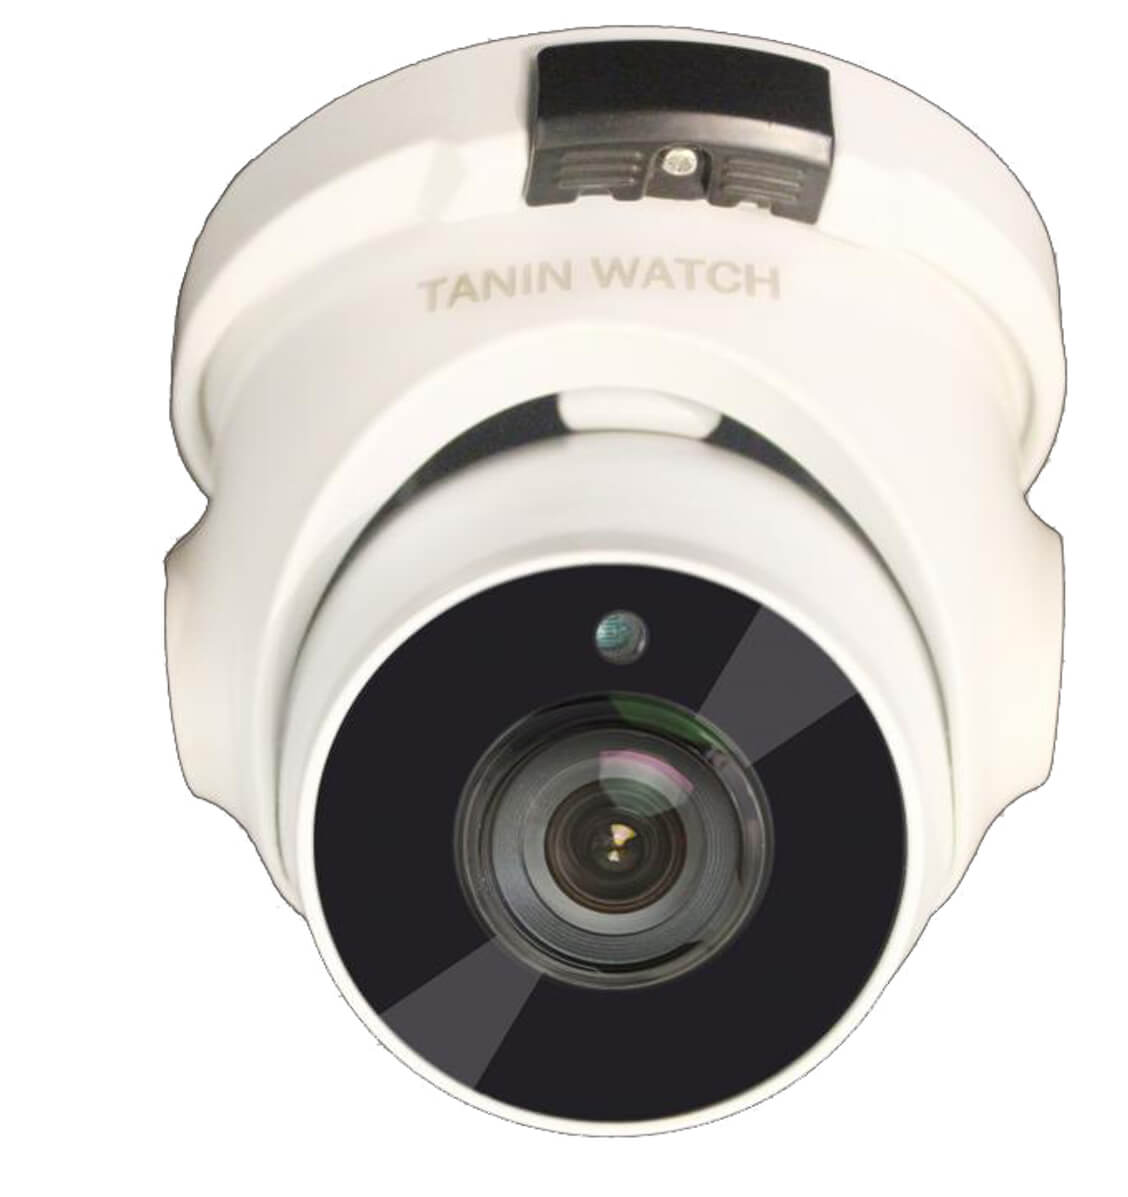 tanin watch TW7033 professional HD indoor cctv camera